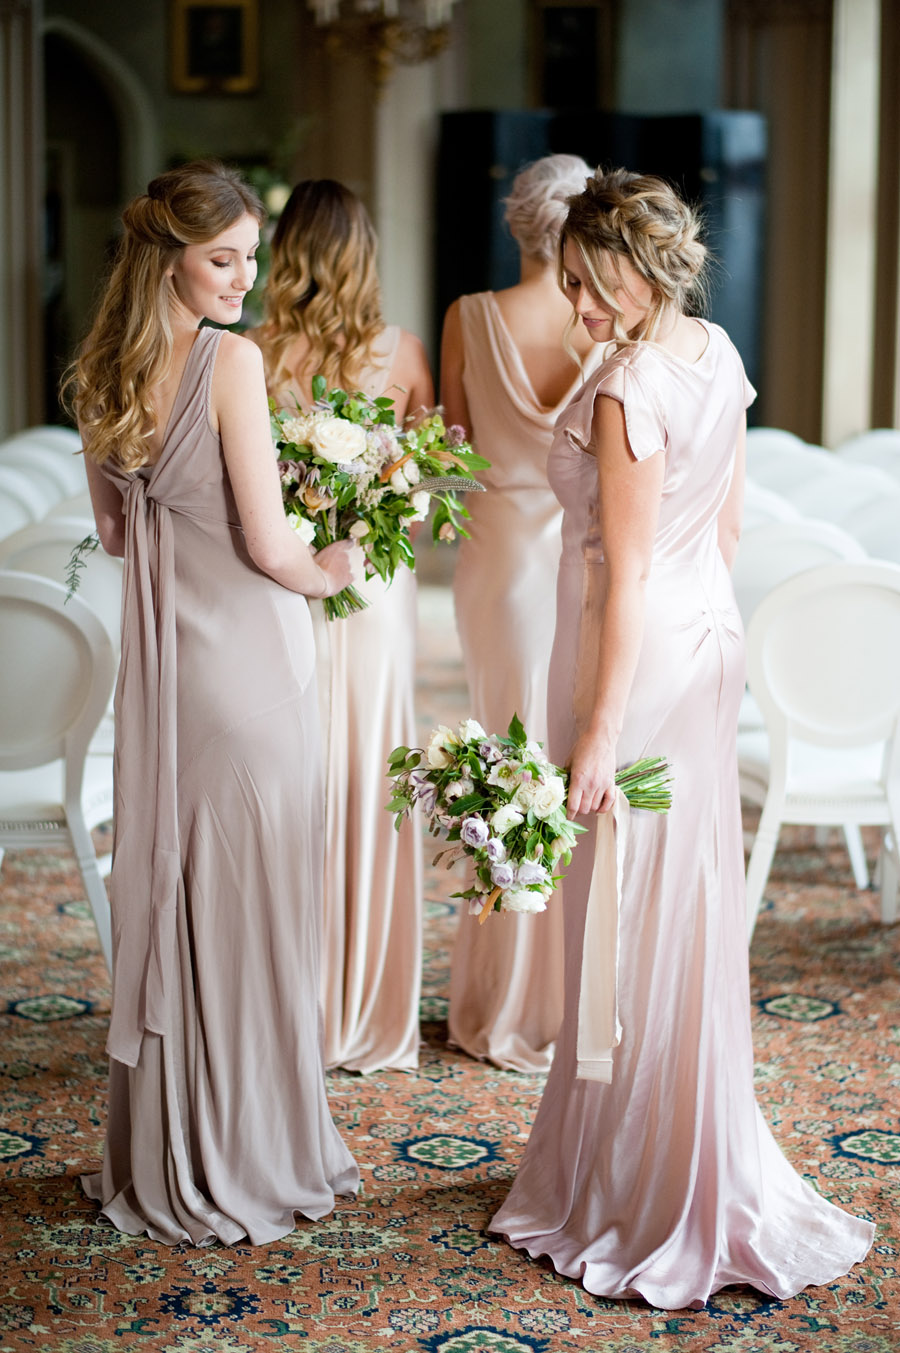 Luxe, modern wedding style ideas by Natalie Hewitt, image credit Rachael Connerton Photography (5)